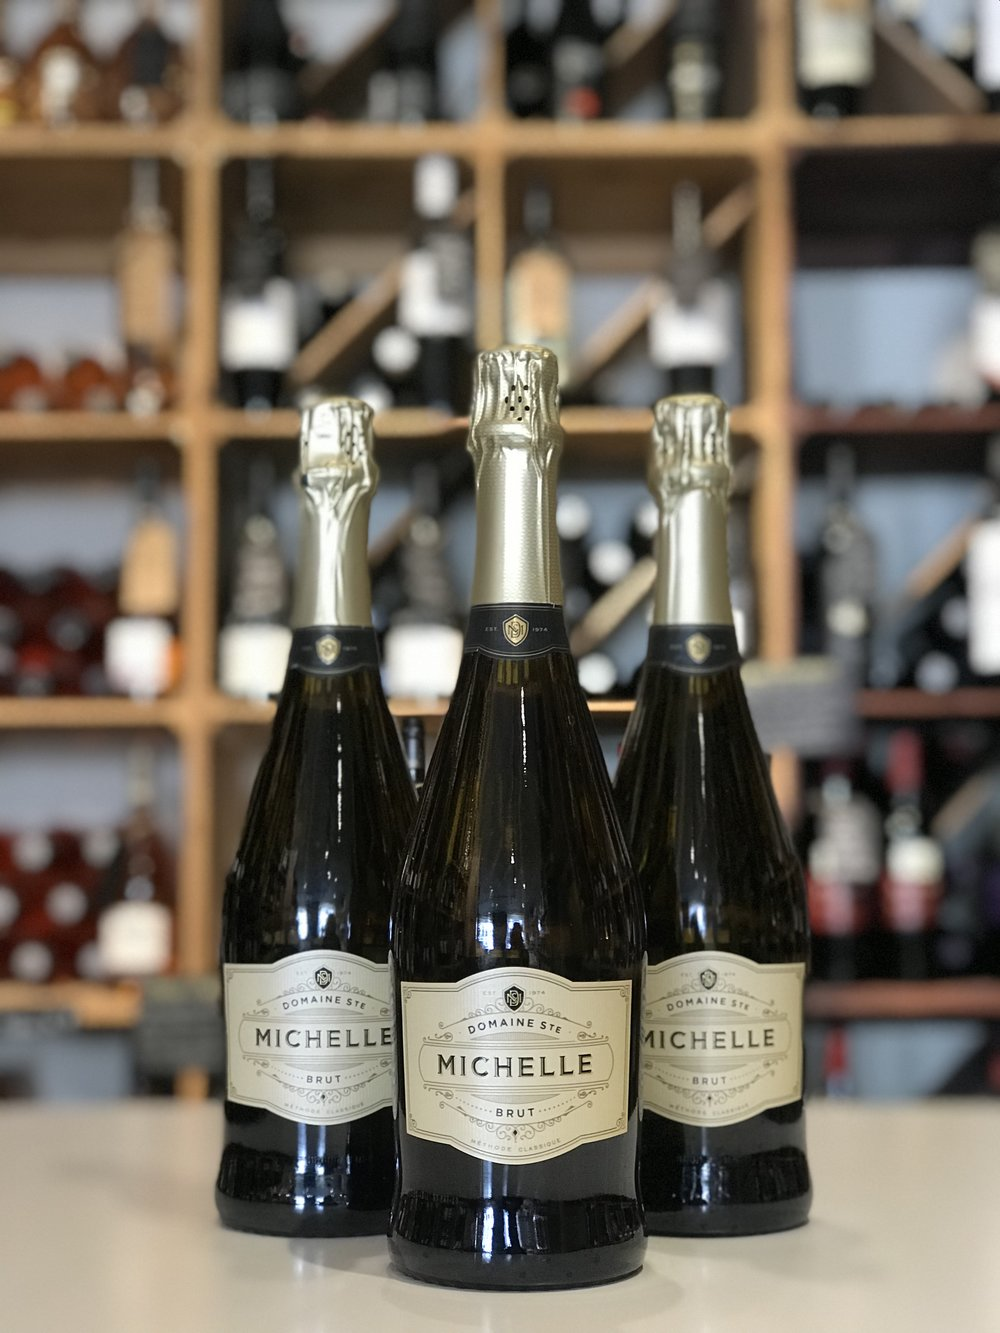 Domaine Ste Michelle Brut - Why I believe you should try everything three times…